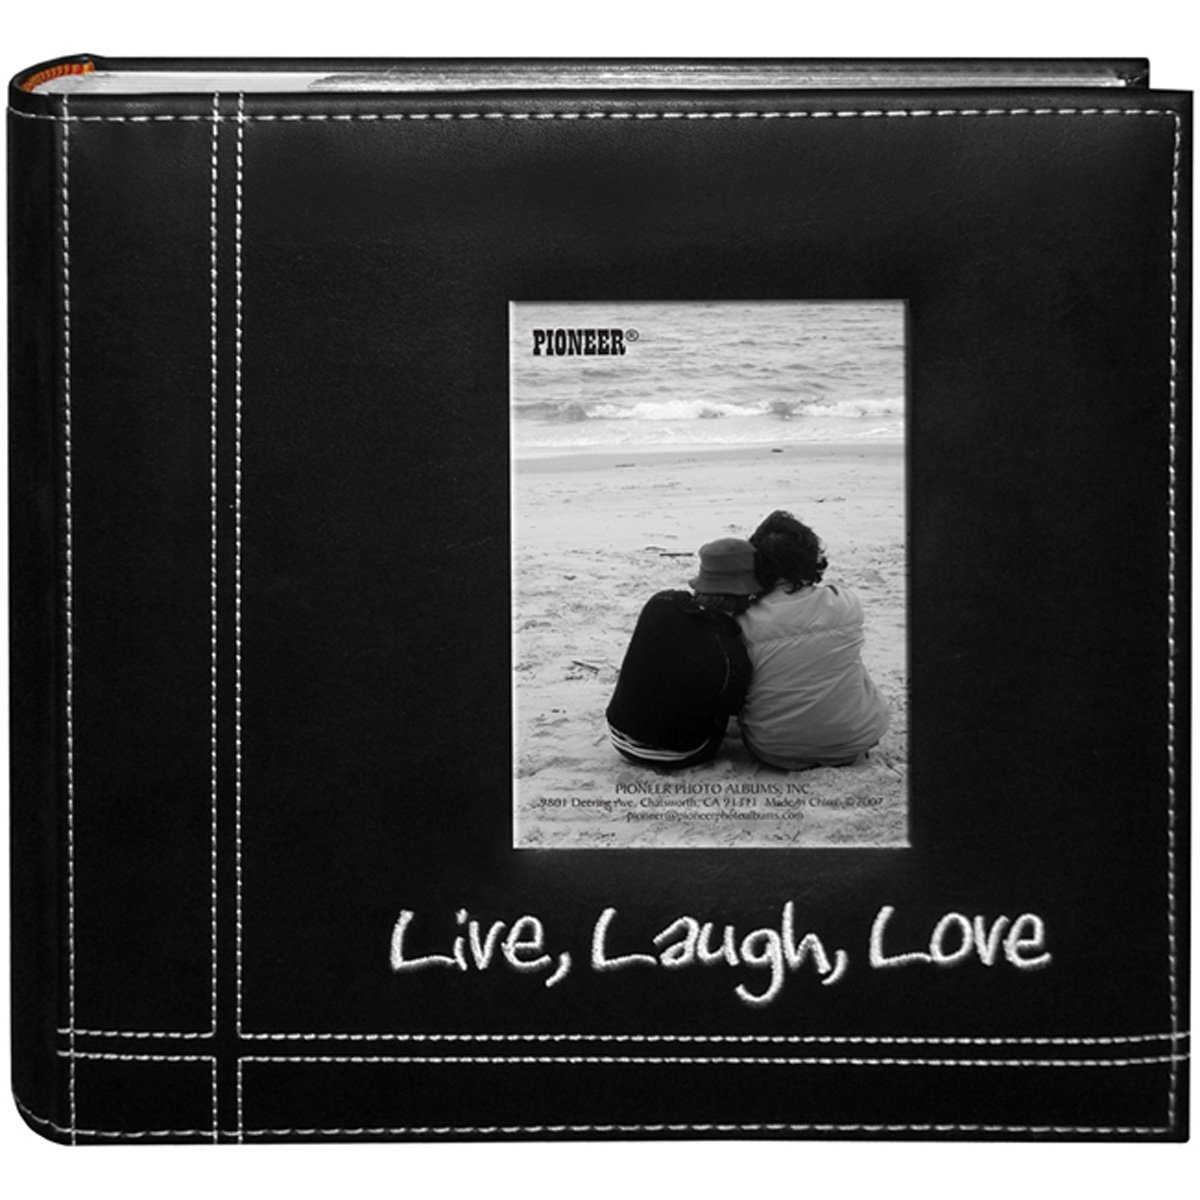 9 by 9 inch Embroidered Stitched Leatherette Photo Album  Archival, photo safe, acid, lining, and PVC free  Clear side-loading pages have a space for journaling; clear protective cover keeps fabric clean  Measures 9 by 9 inches and holds up to 200 4 by 6 inch photos